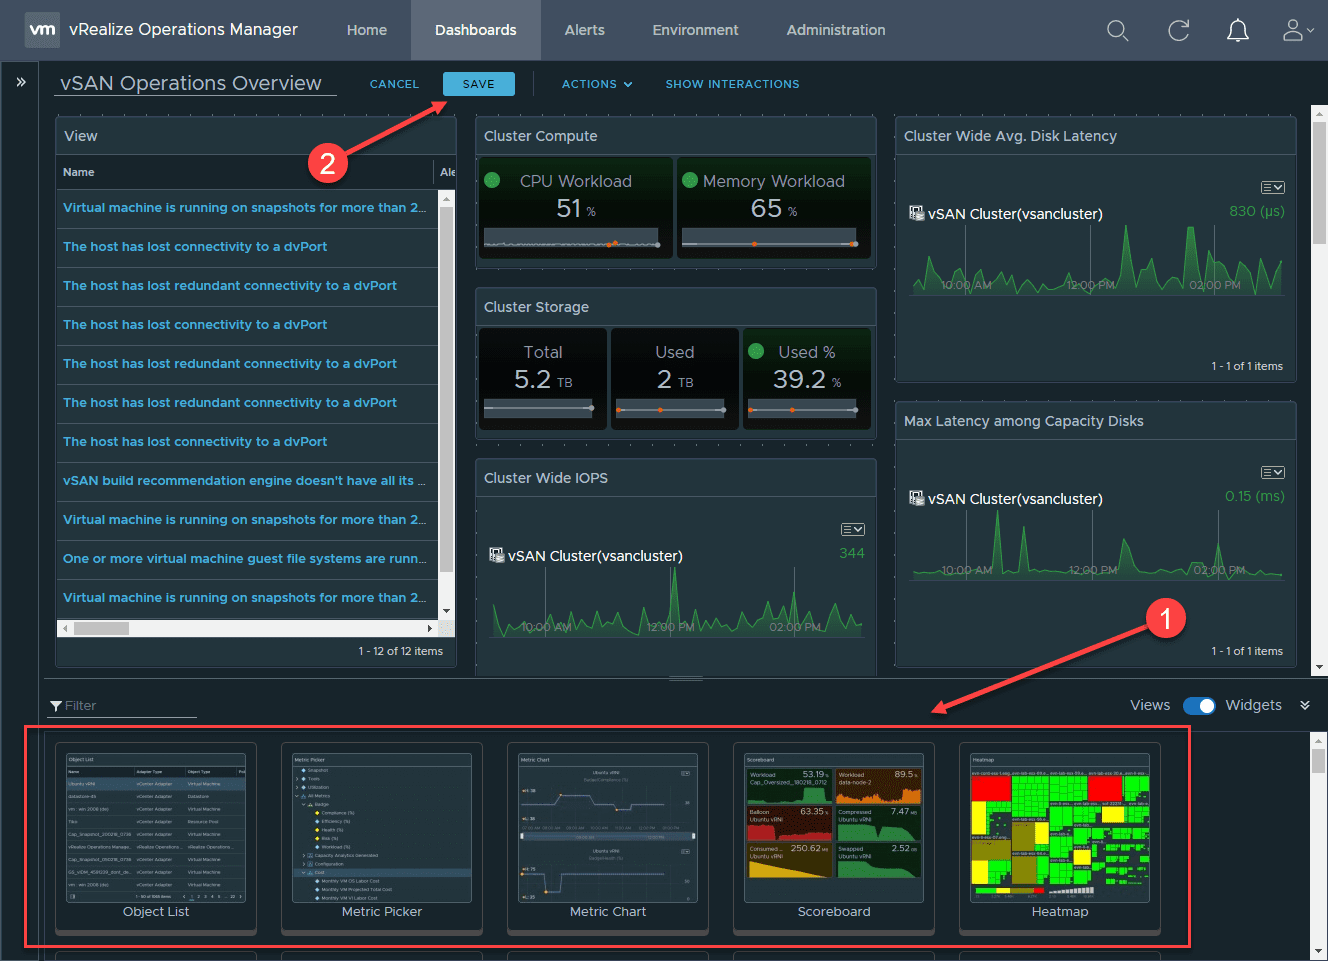 Adding-a-widget-or-view-to-an-existing-dashboard-and-saving-the-dashboard